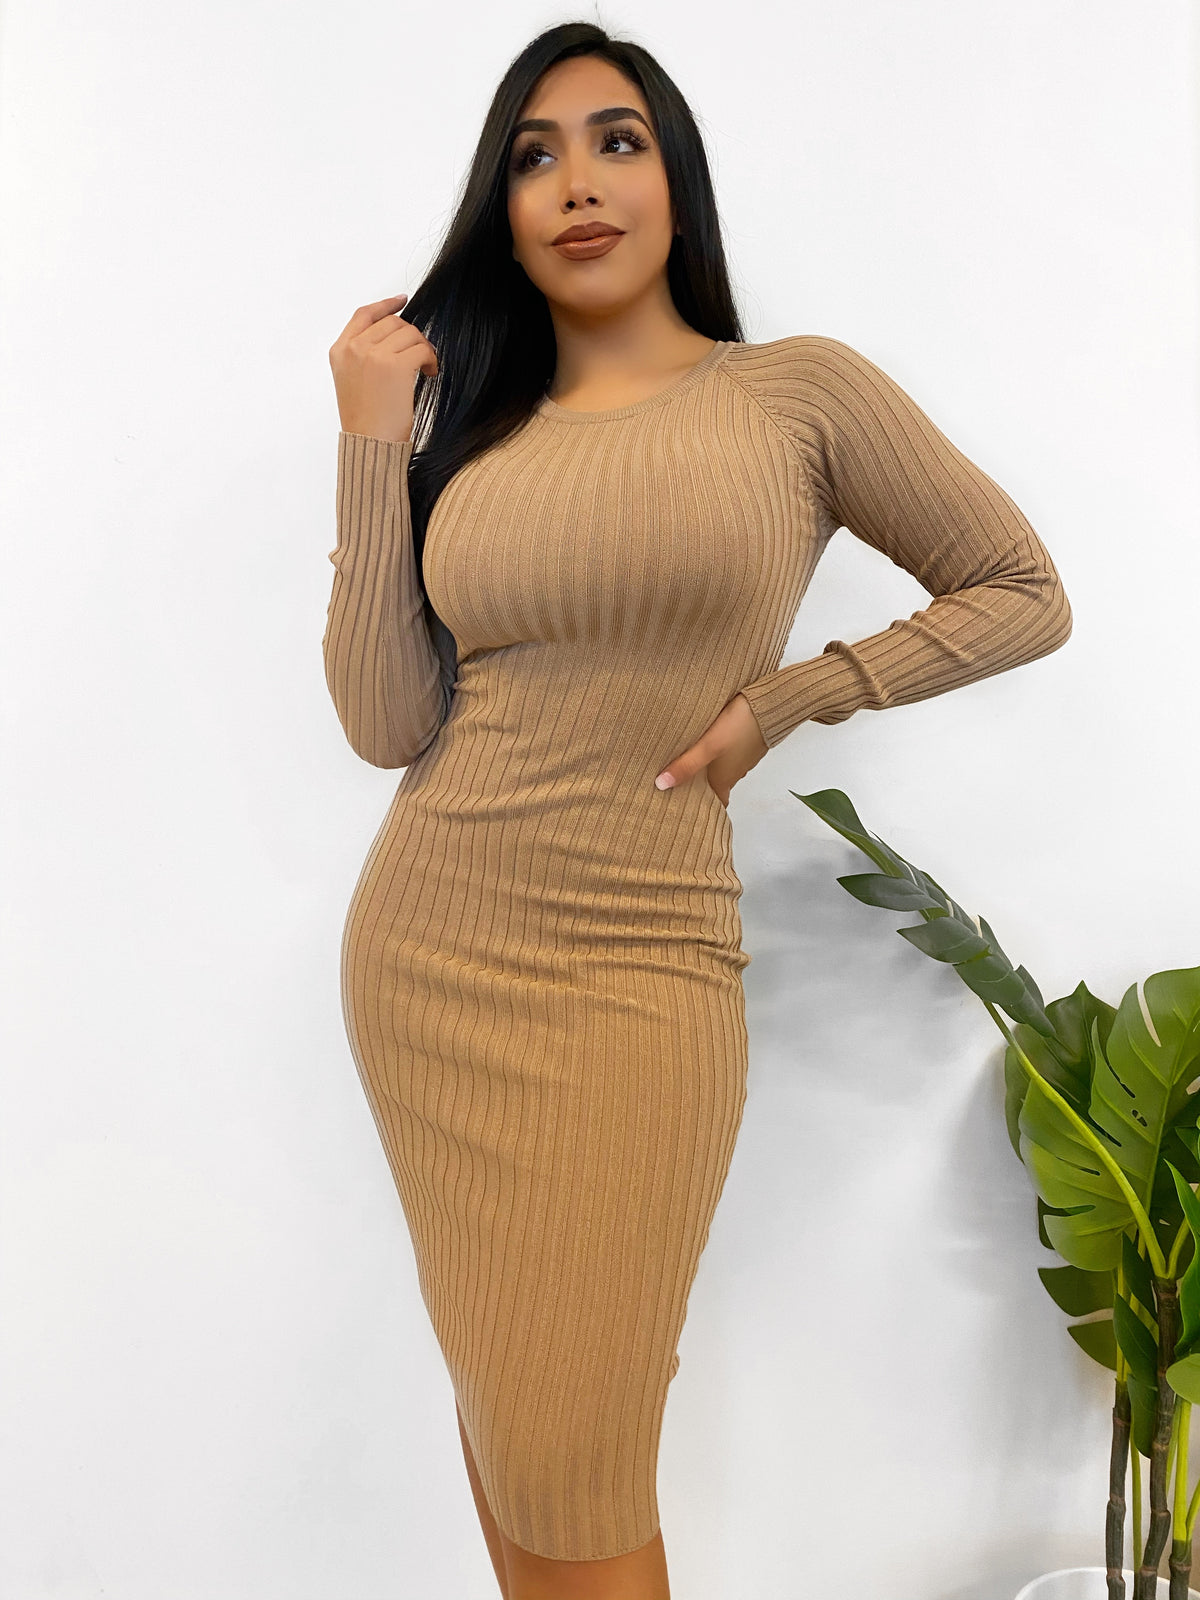 ribbed long sleeve dress, high neck, open areas on high back and above the waistline on the back, tight fit, stretchy material, length to below the knee, color is taupe.